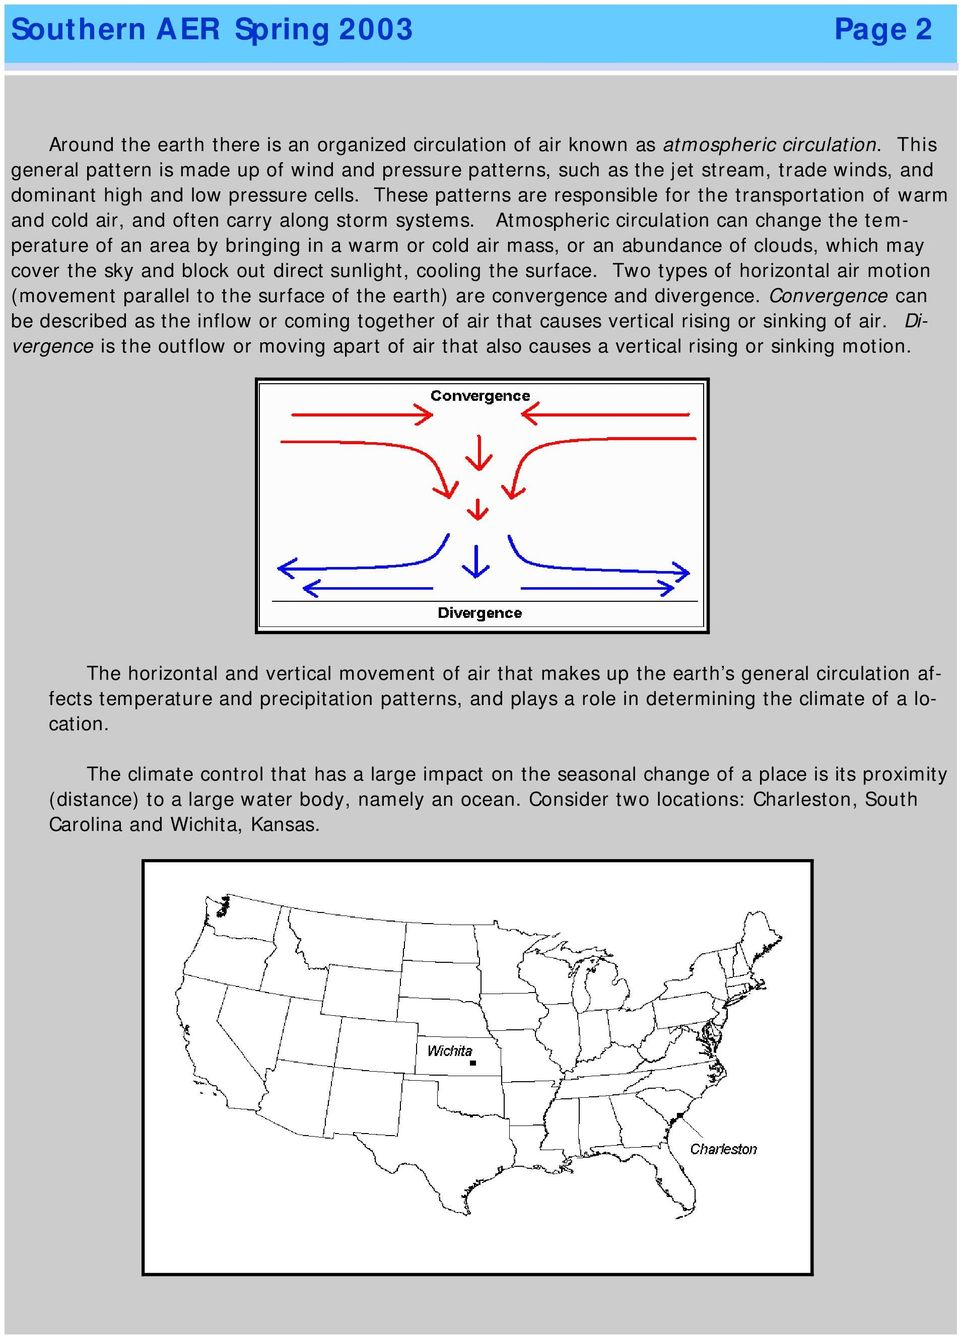 These patterns are responsible for the transportation of warm and cold air, and often carry along storm systems.